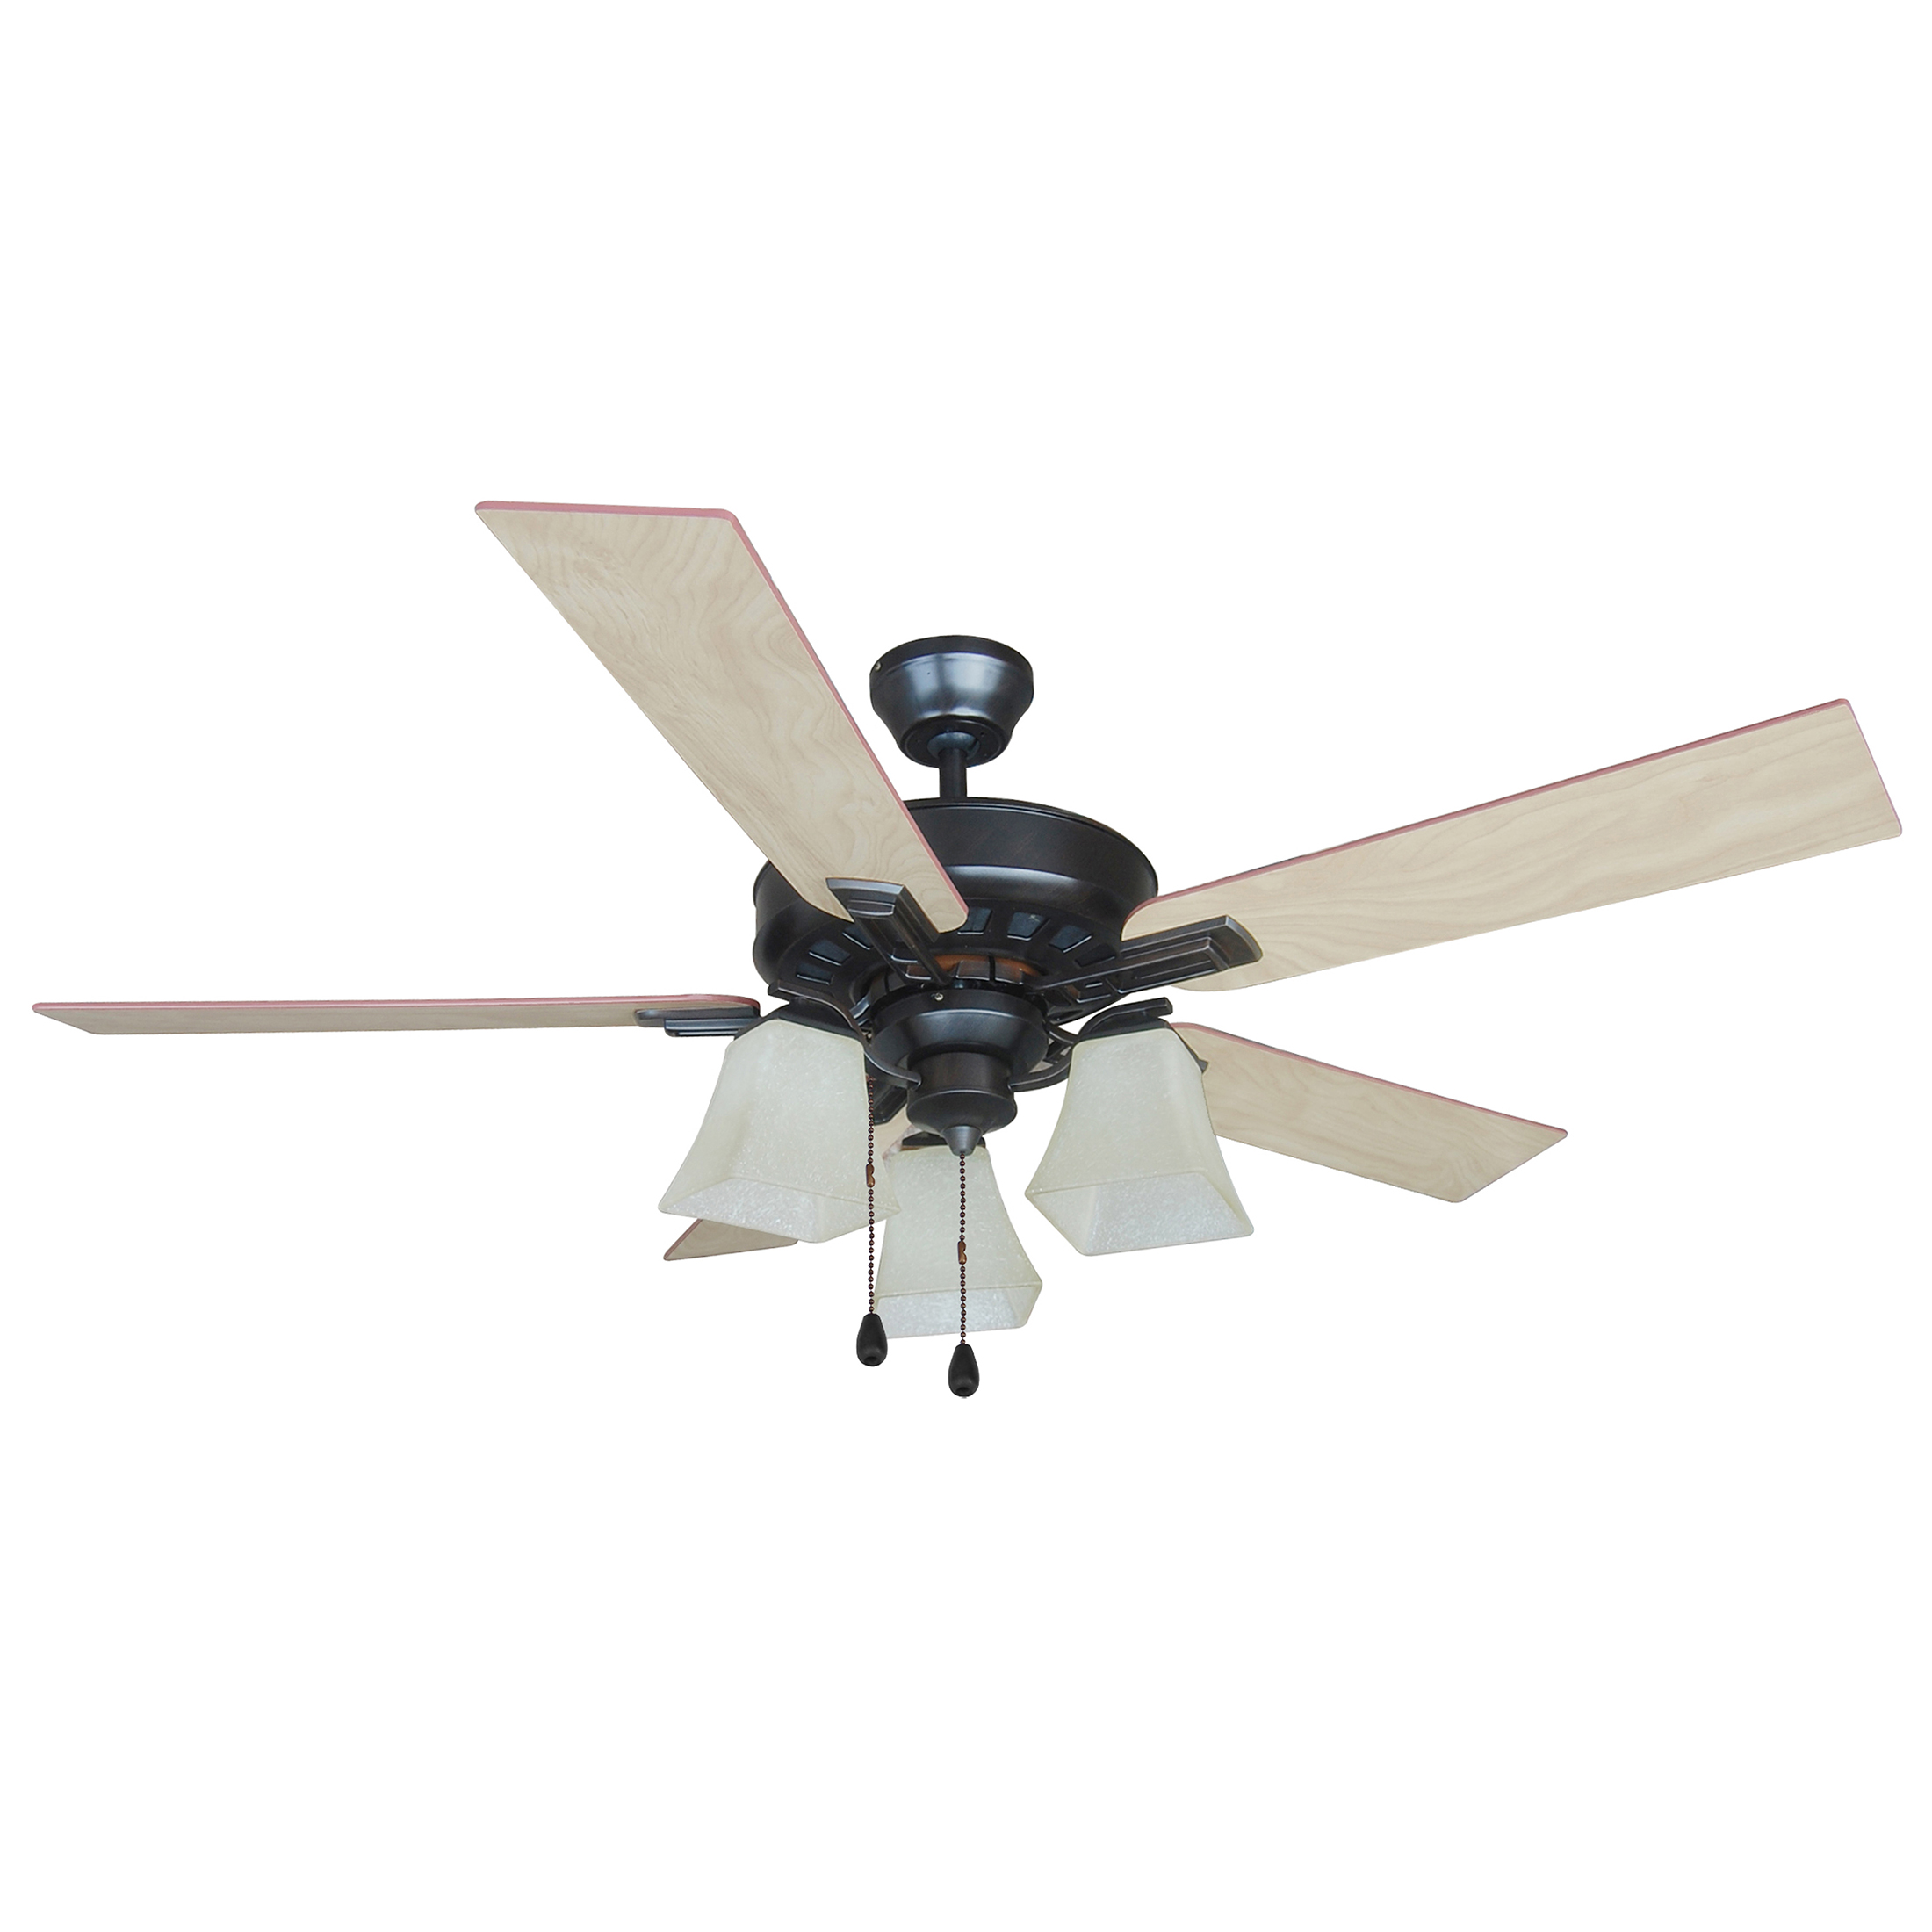 Torino 52 ceiling fan 154245 ceiling fans design house mozeypictures Choice Image